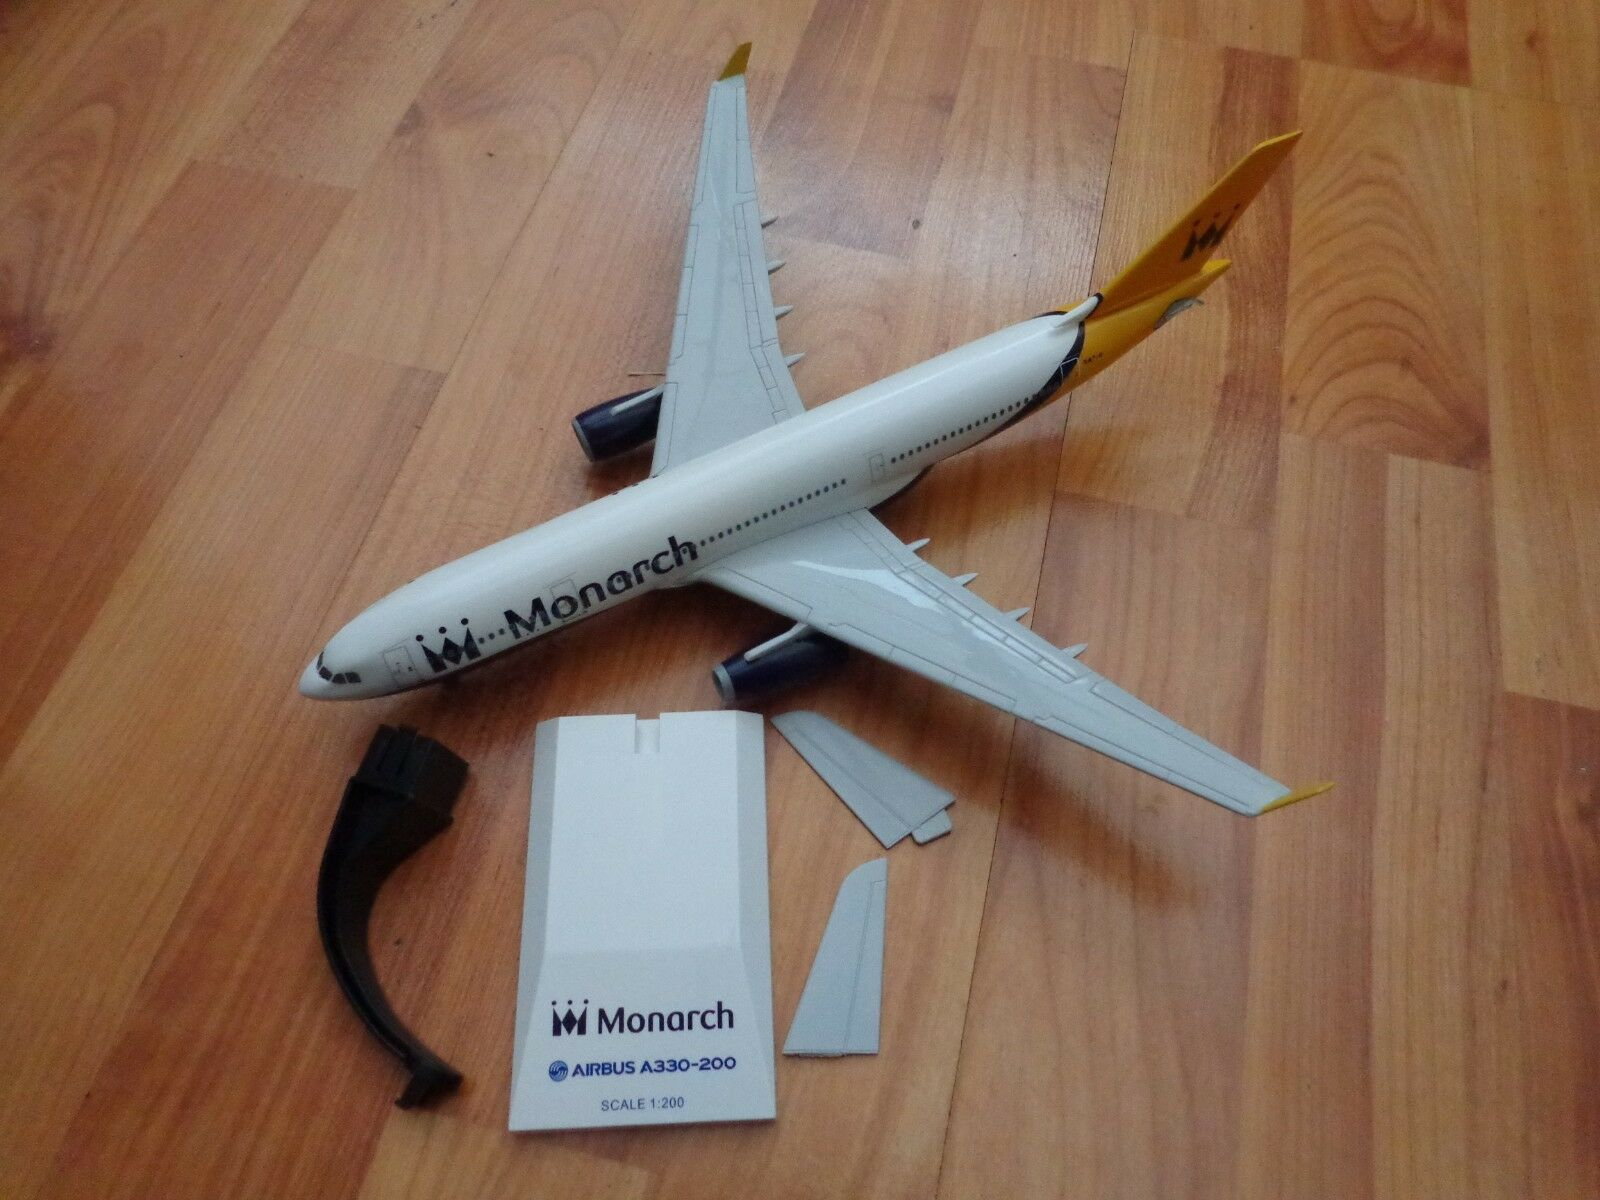 SKYMARKS 1 200 MONARCH AIRLINES AIRBUS A330-220 G-SMAN PLASTIC AIRCRAFT PLANE